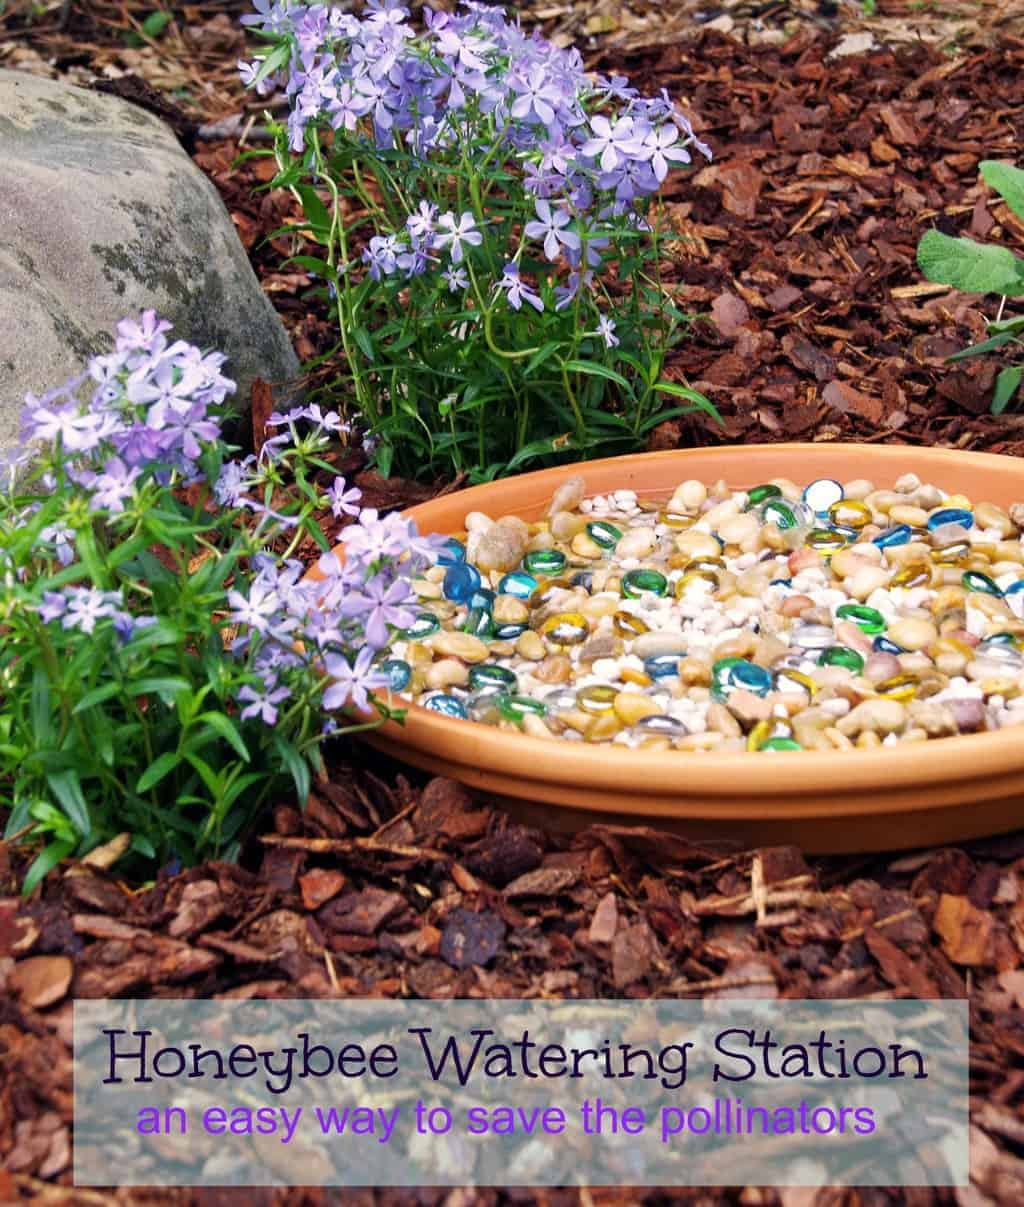 Save the Pollinators with a Honeybee Watering Station in the Garden!